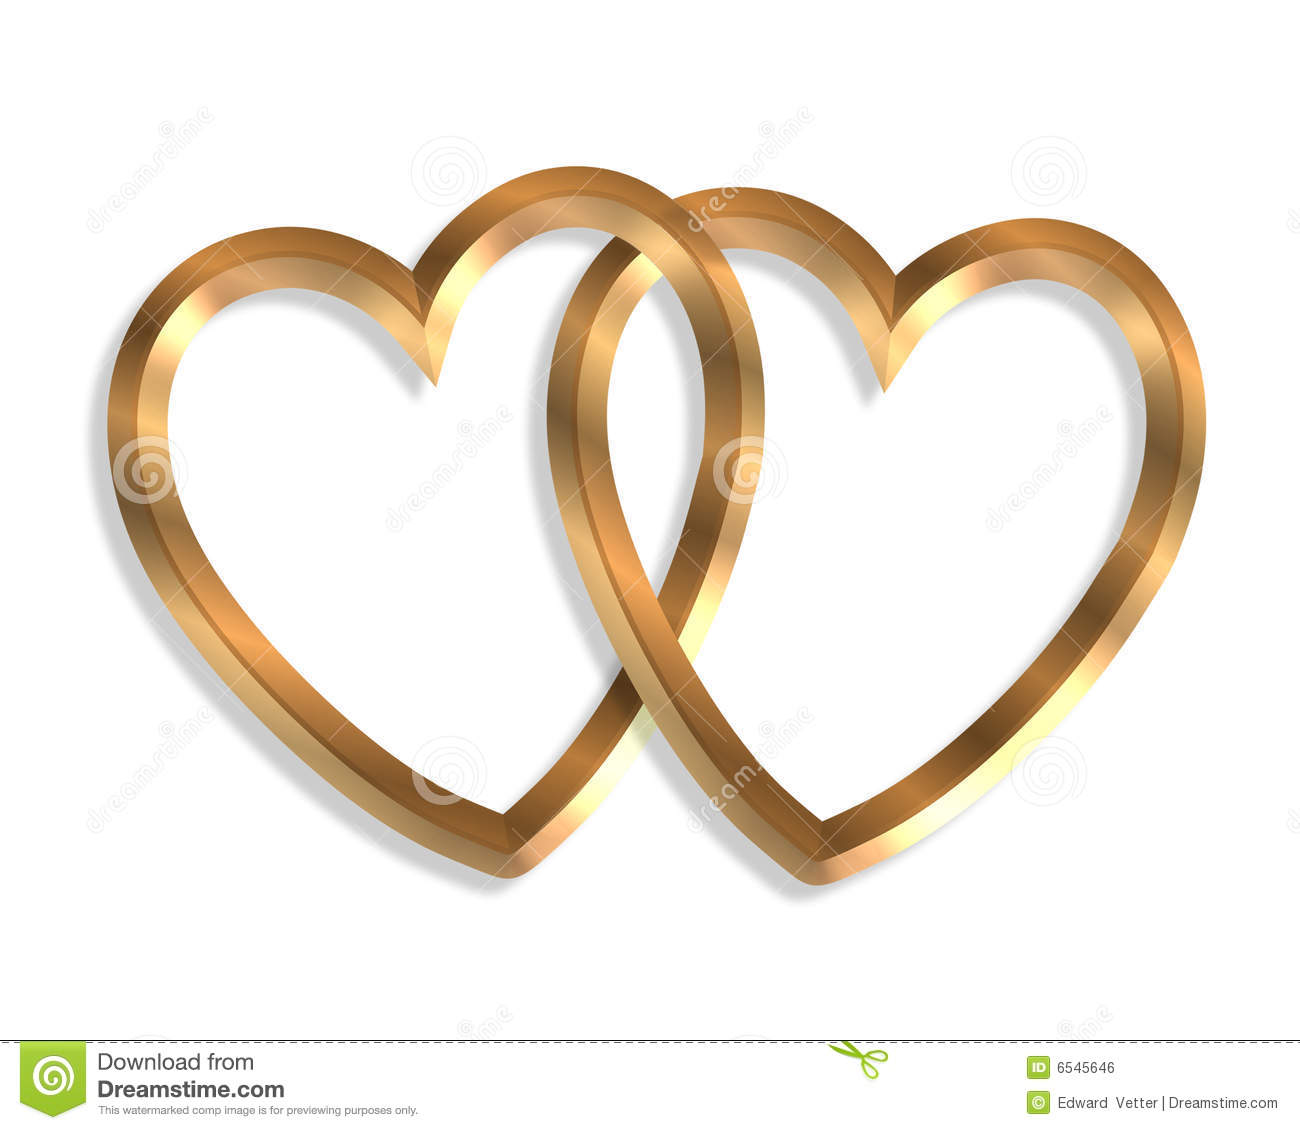 ... Gold Hearts 3D Graphic Royalty Free Stock Image - Image: 6545646